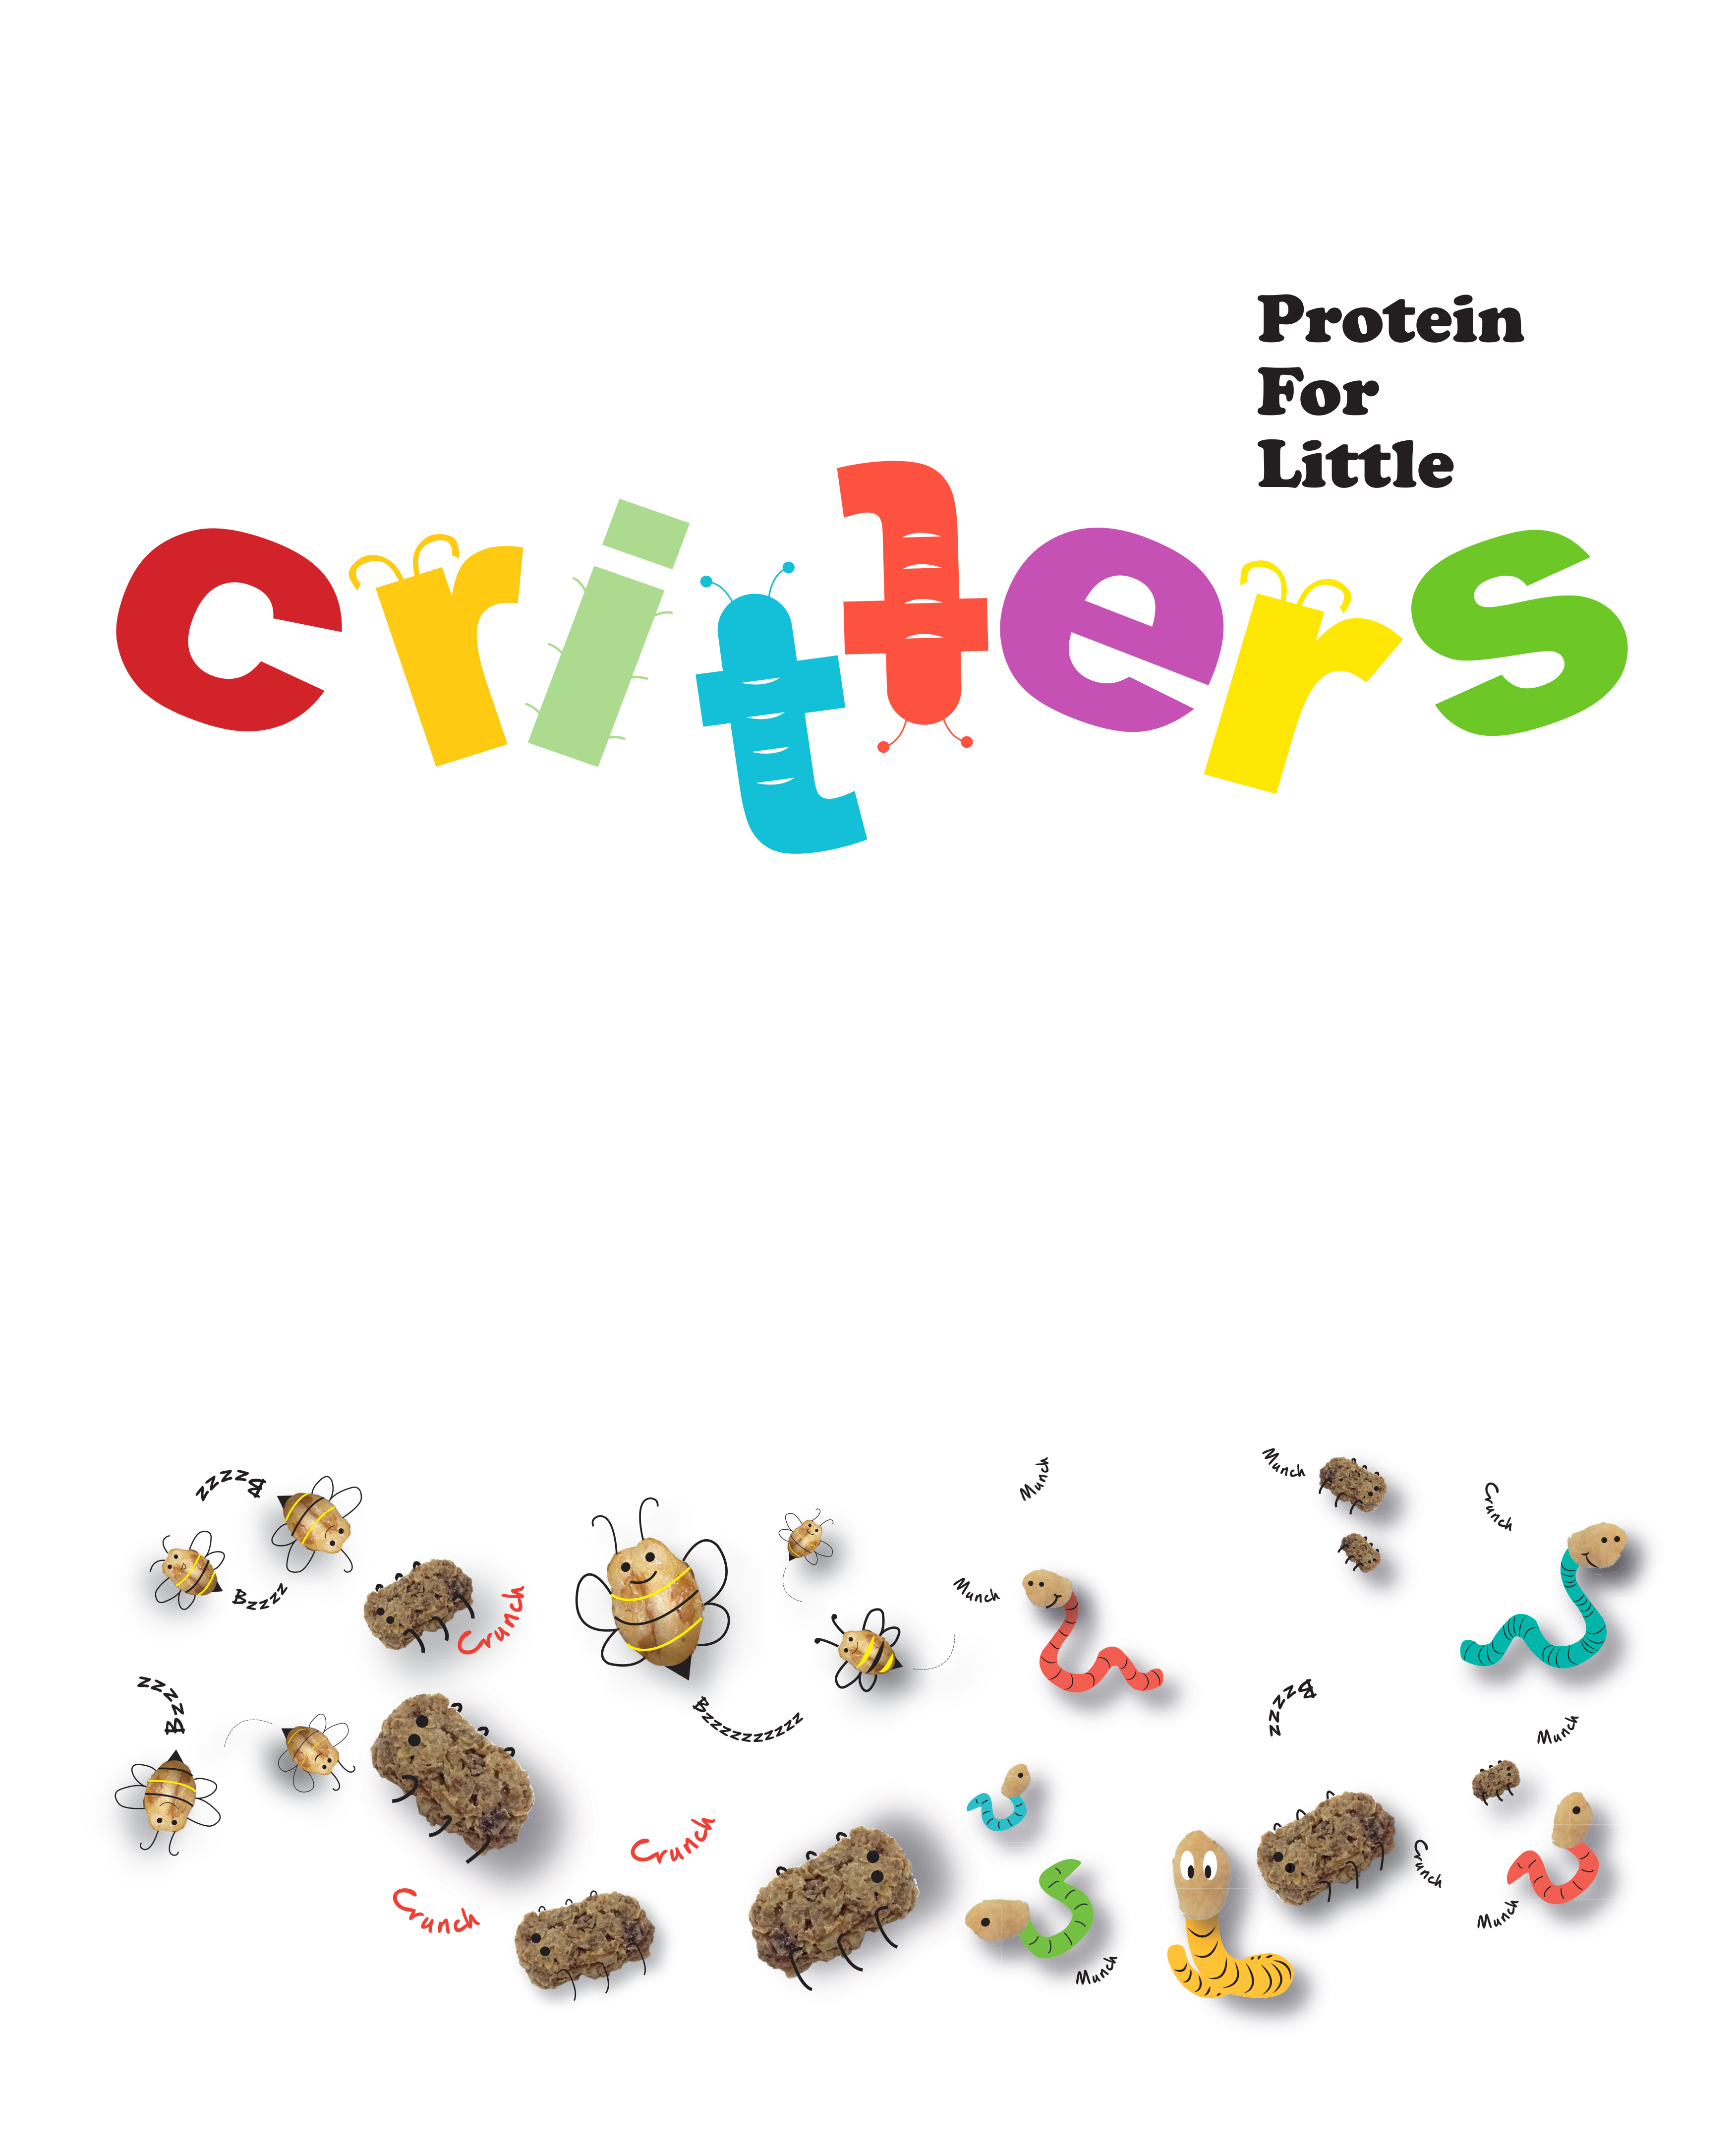 Critters - The New Breakfast Image